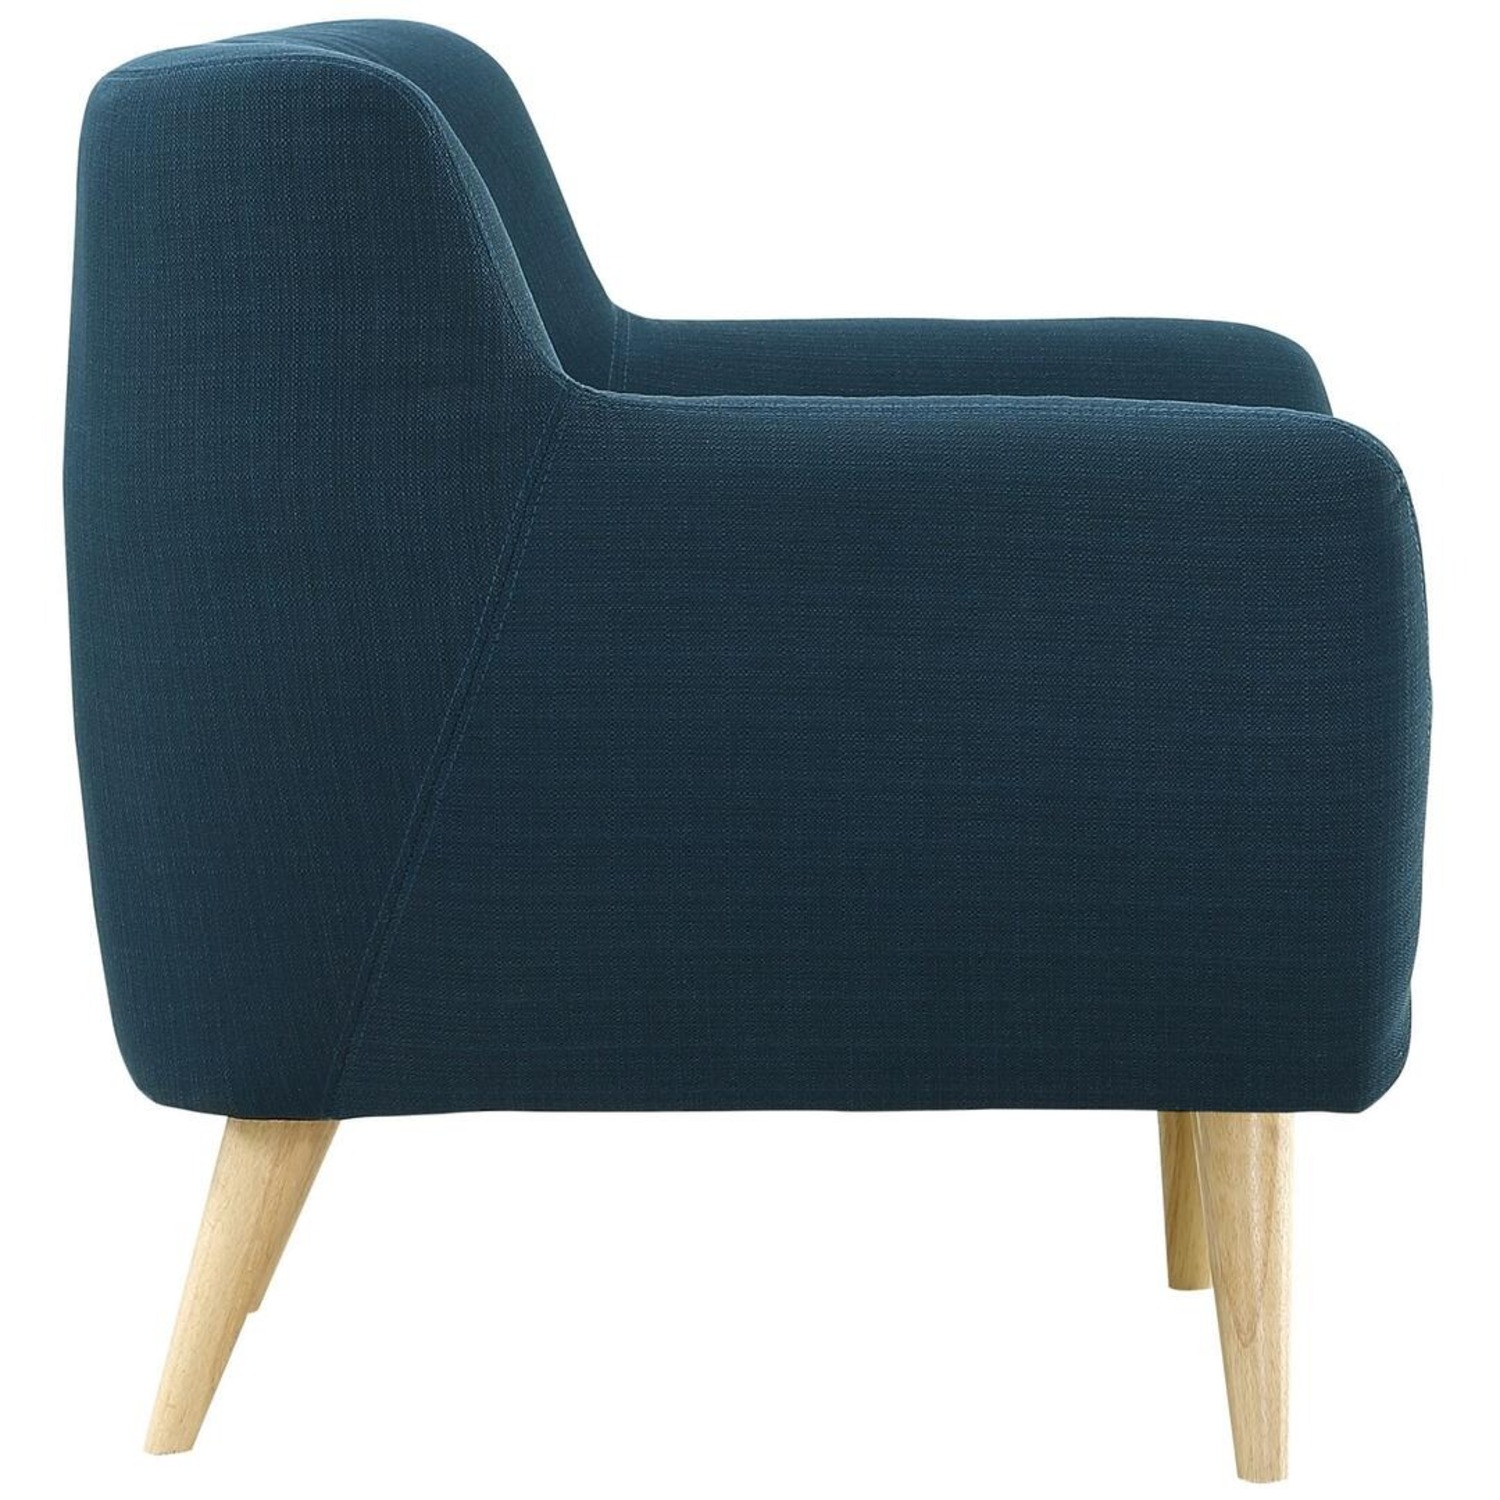 Armchair In Azure Upholstery W/ Natural Wood Legs - image-2